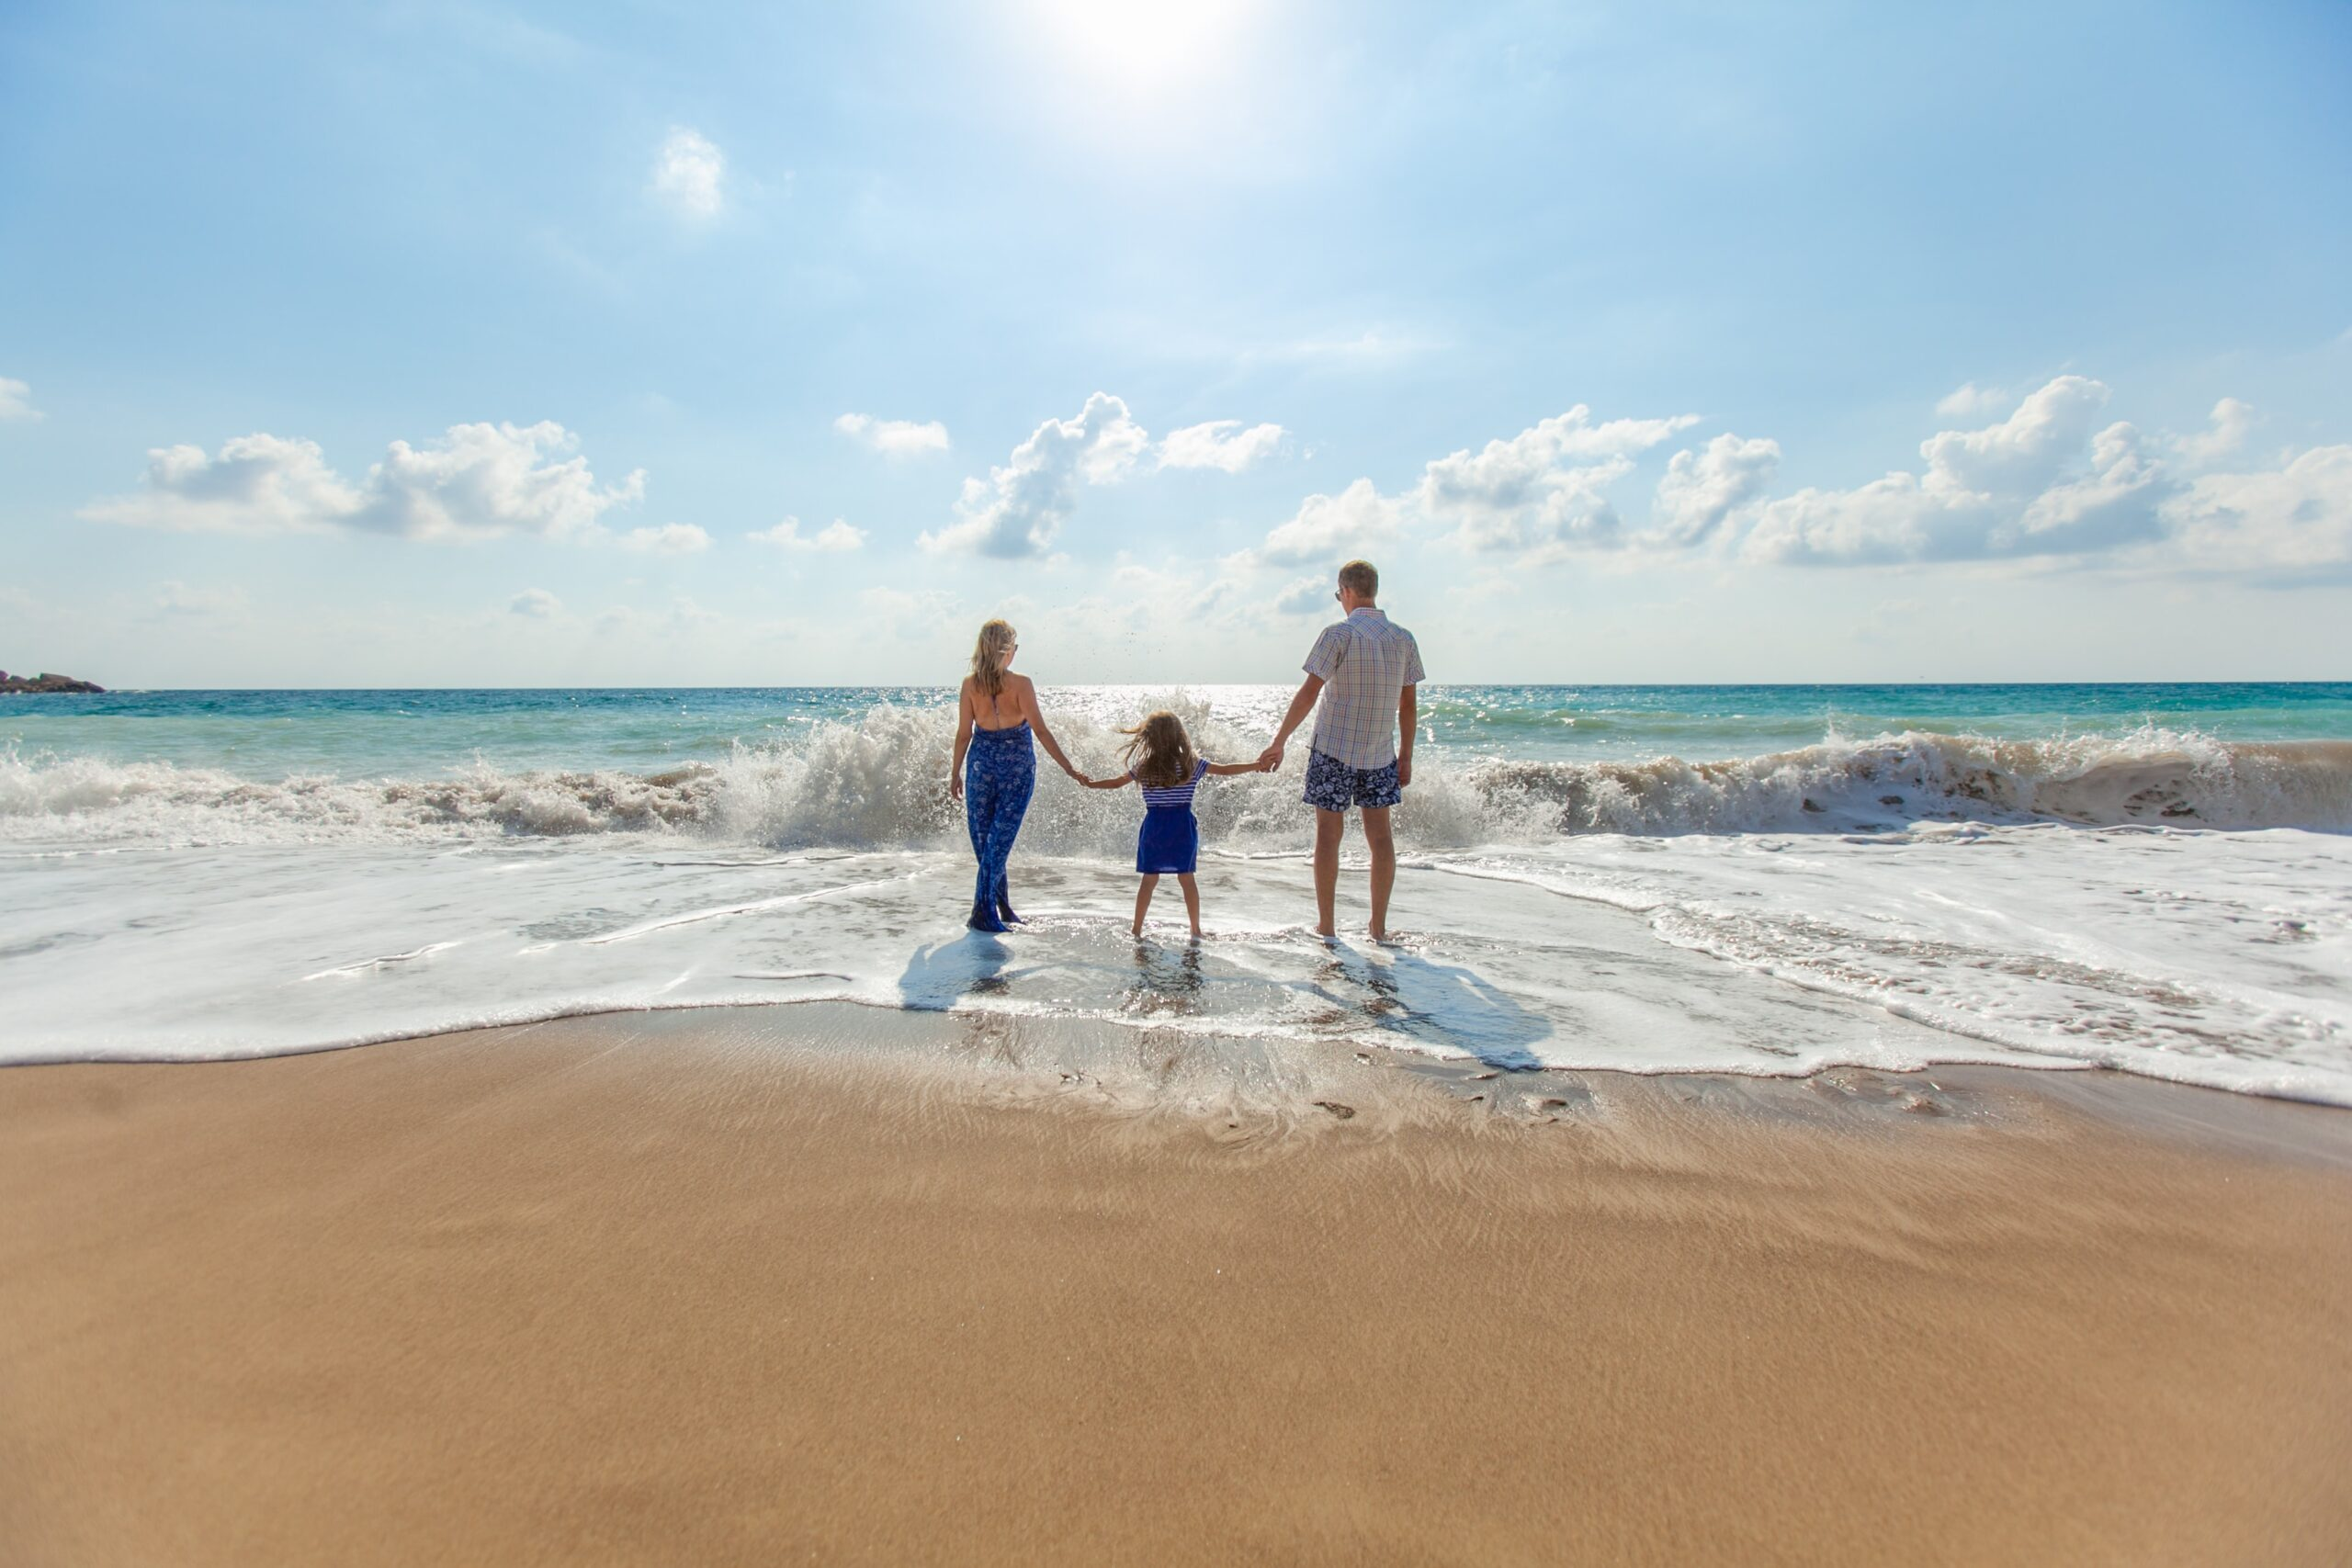 Protect your family with Life insurance